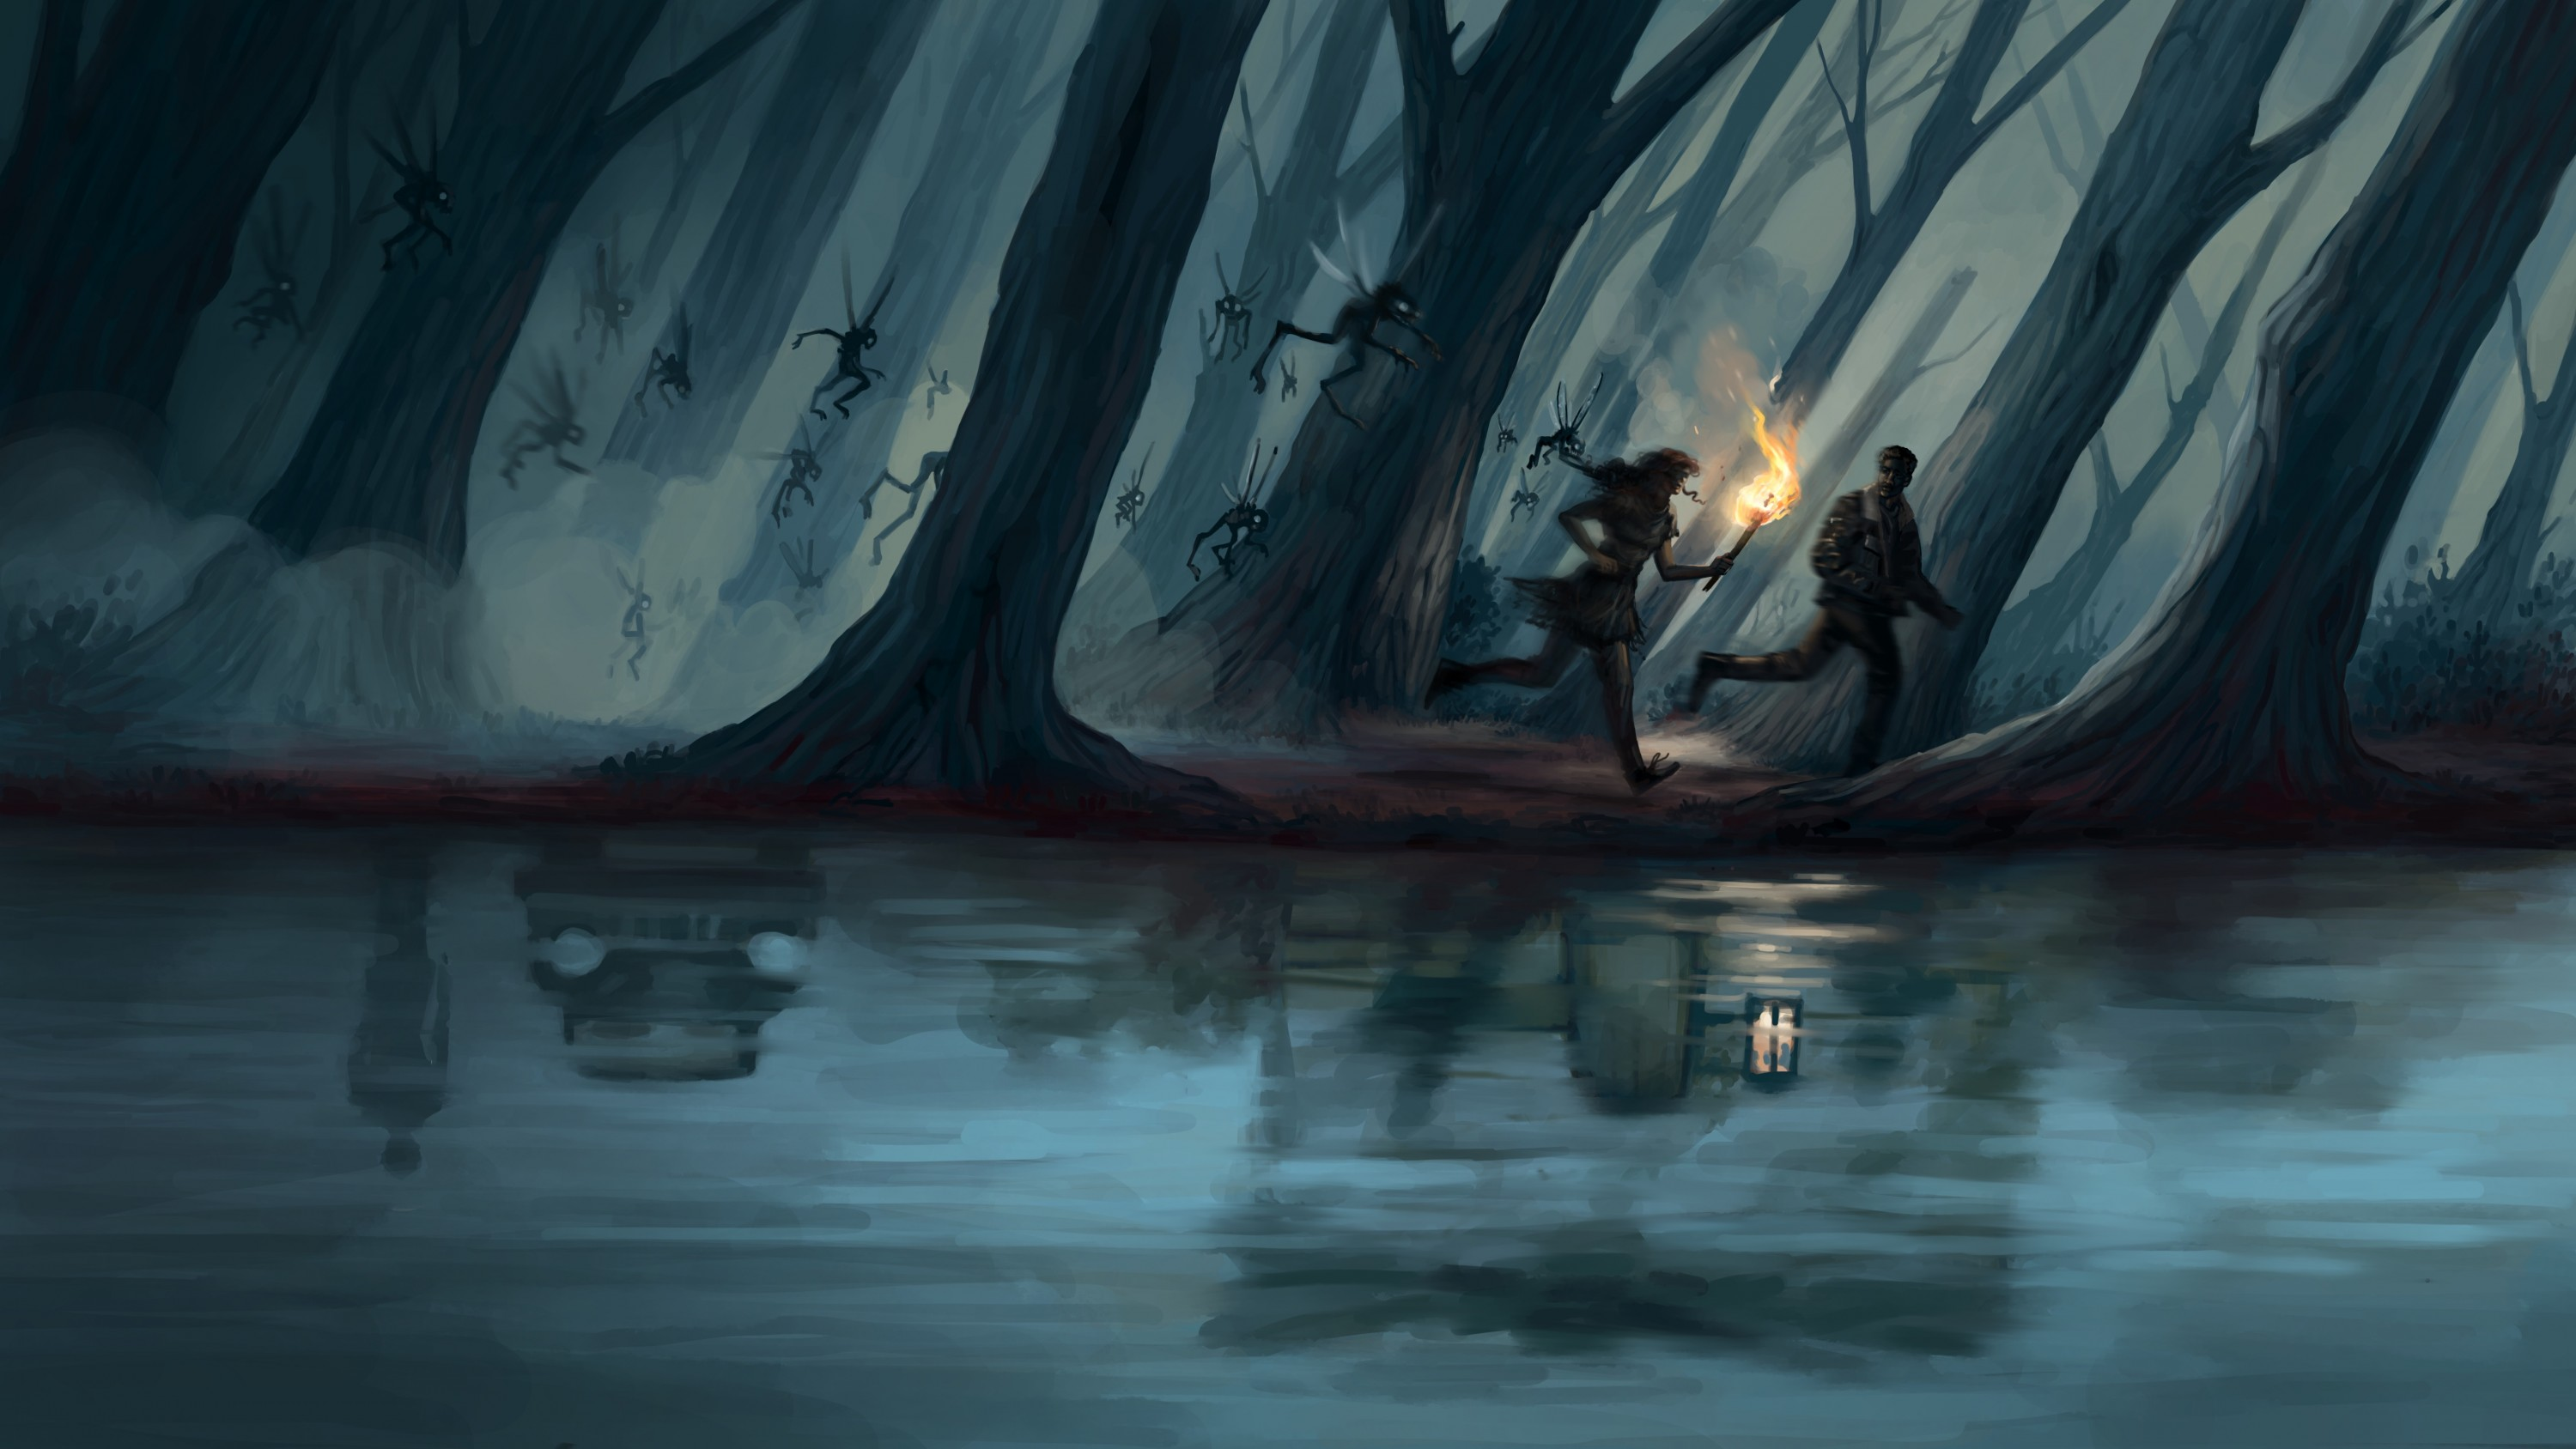 In this horizontal orientated image two silhouetted characters one man and one woman run through a dark, foggy forest with a torch in the hand of the email figure. They are being chased by flying evil pixie type creatures. In the water is a reflection of